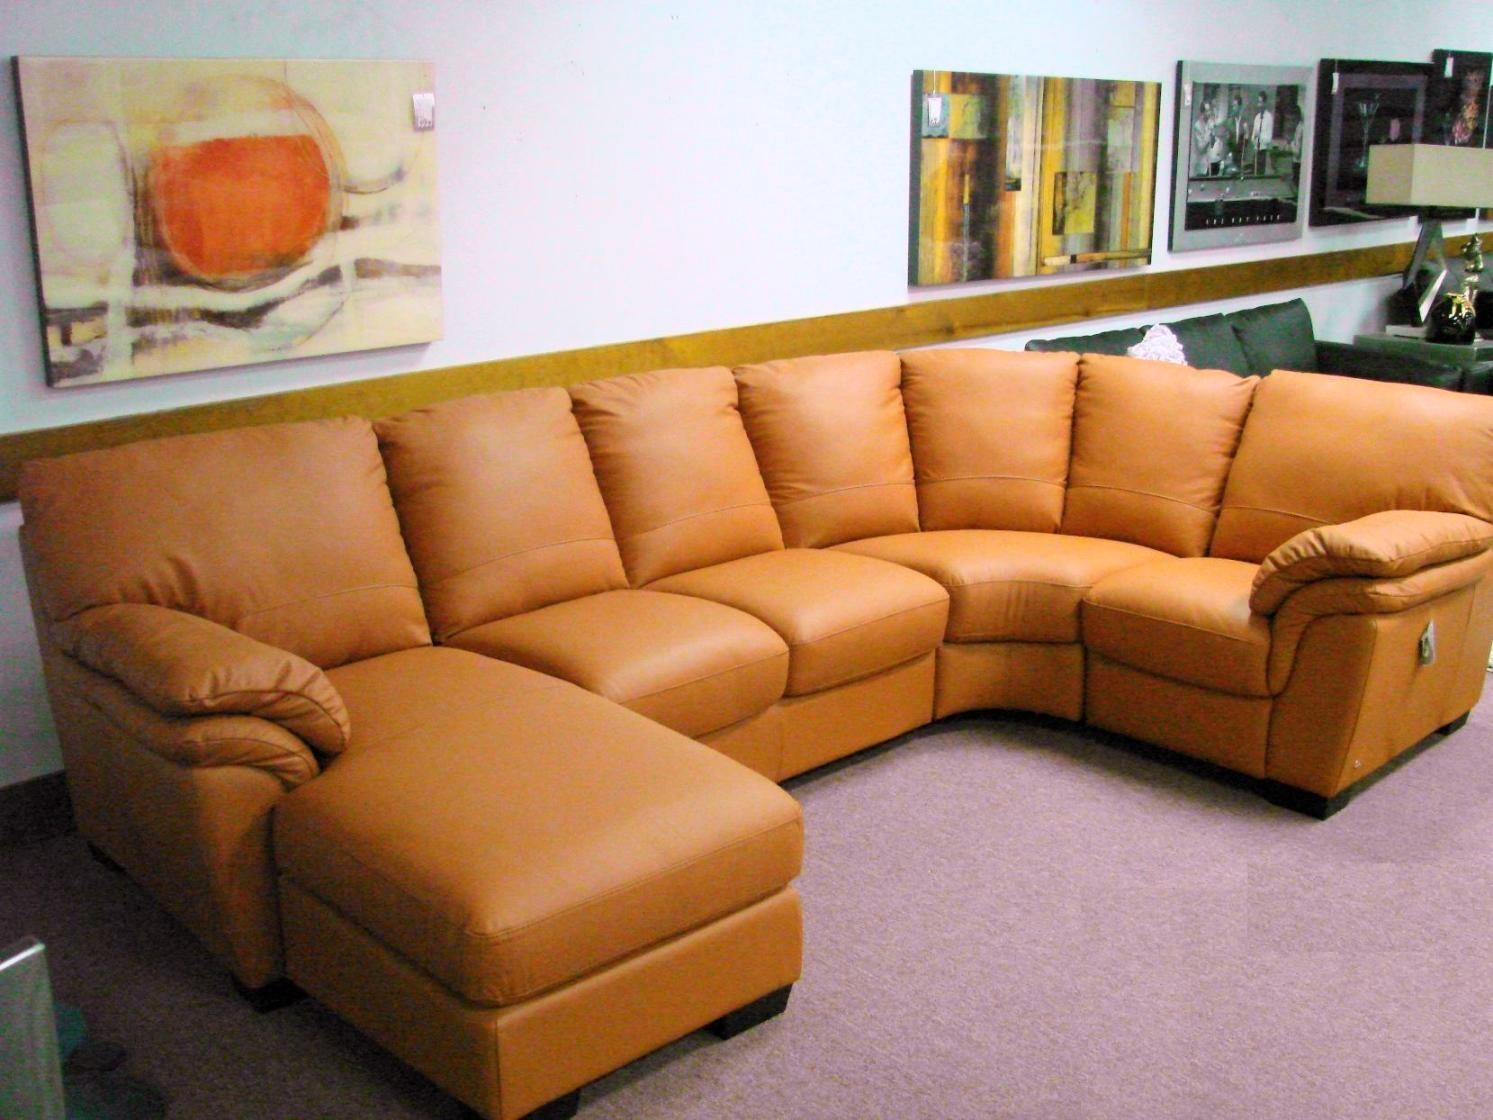 Sofas Center : Orange Leather Sofa Sectional Sleepers Sleeper Inside Burnt Orange Leather Sofas (View 7 of 20)